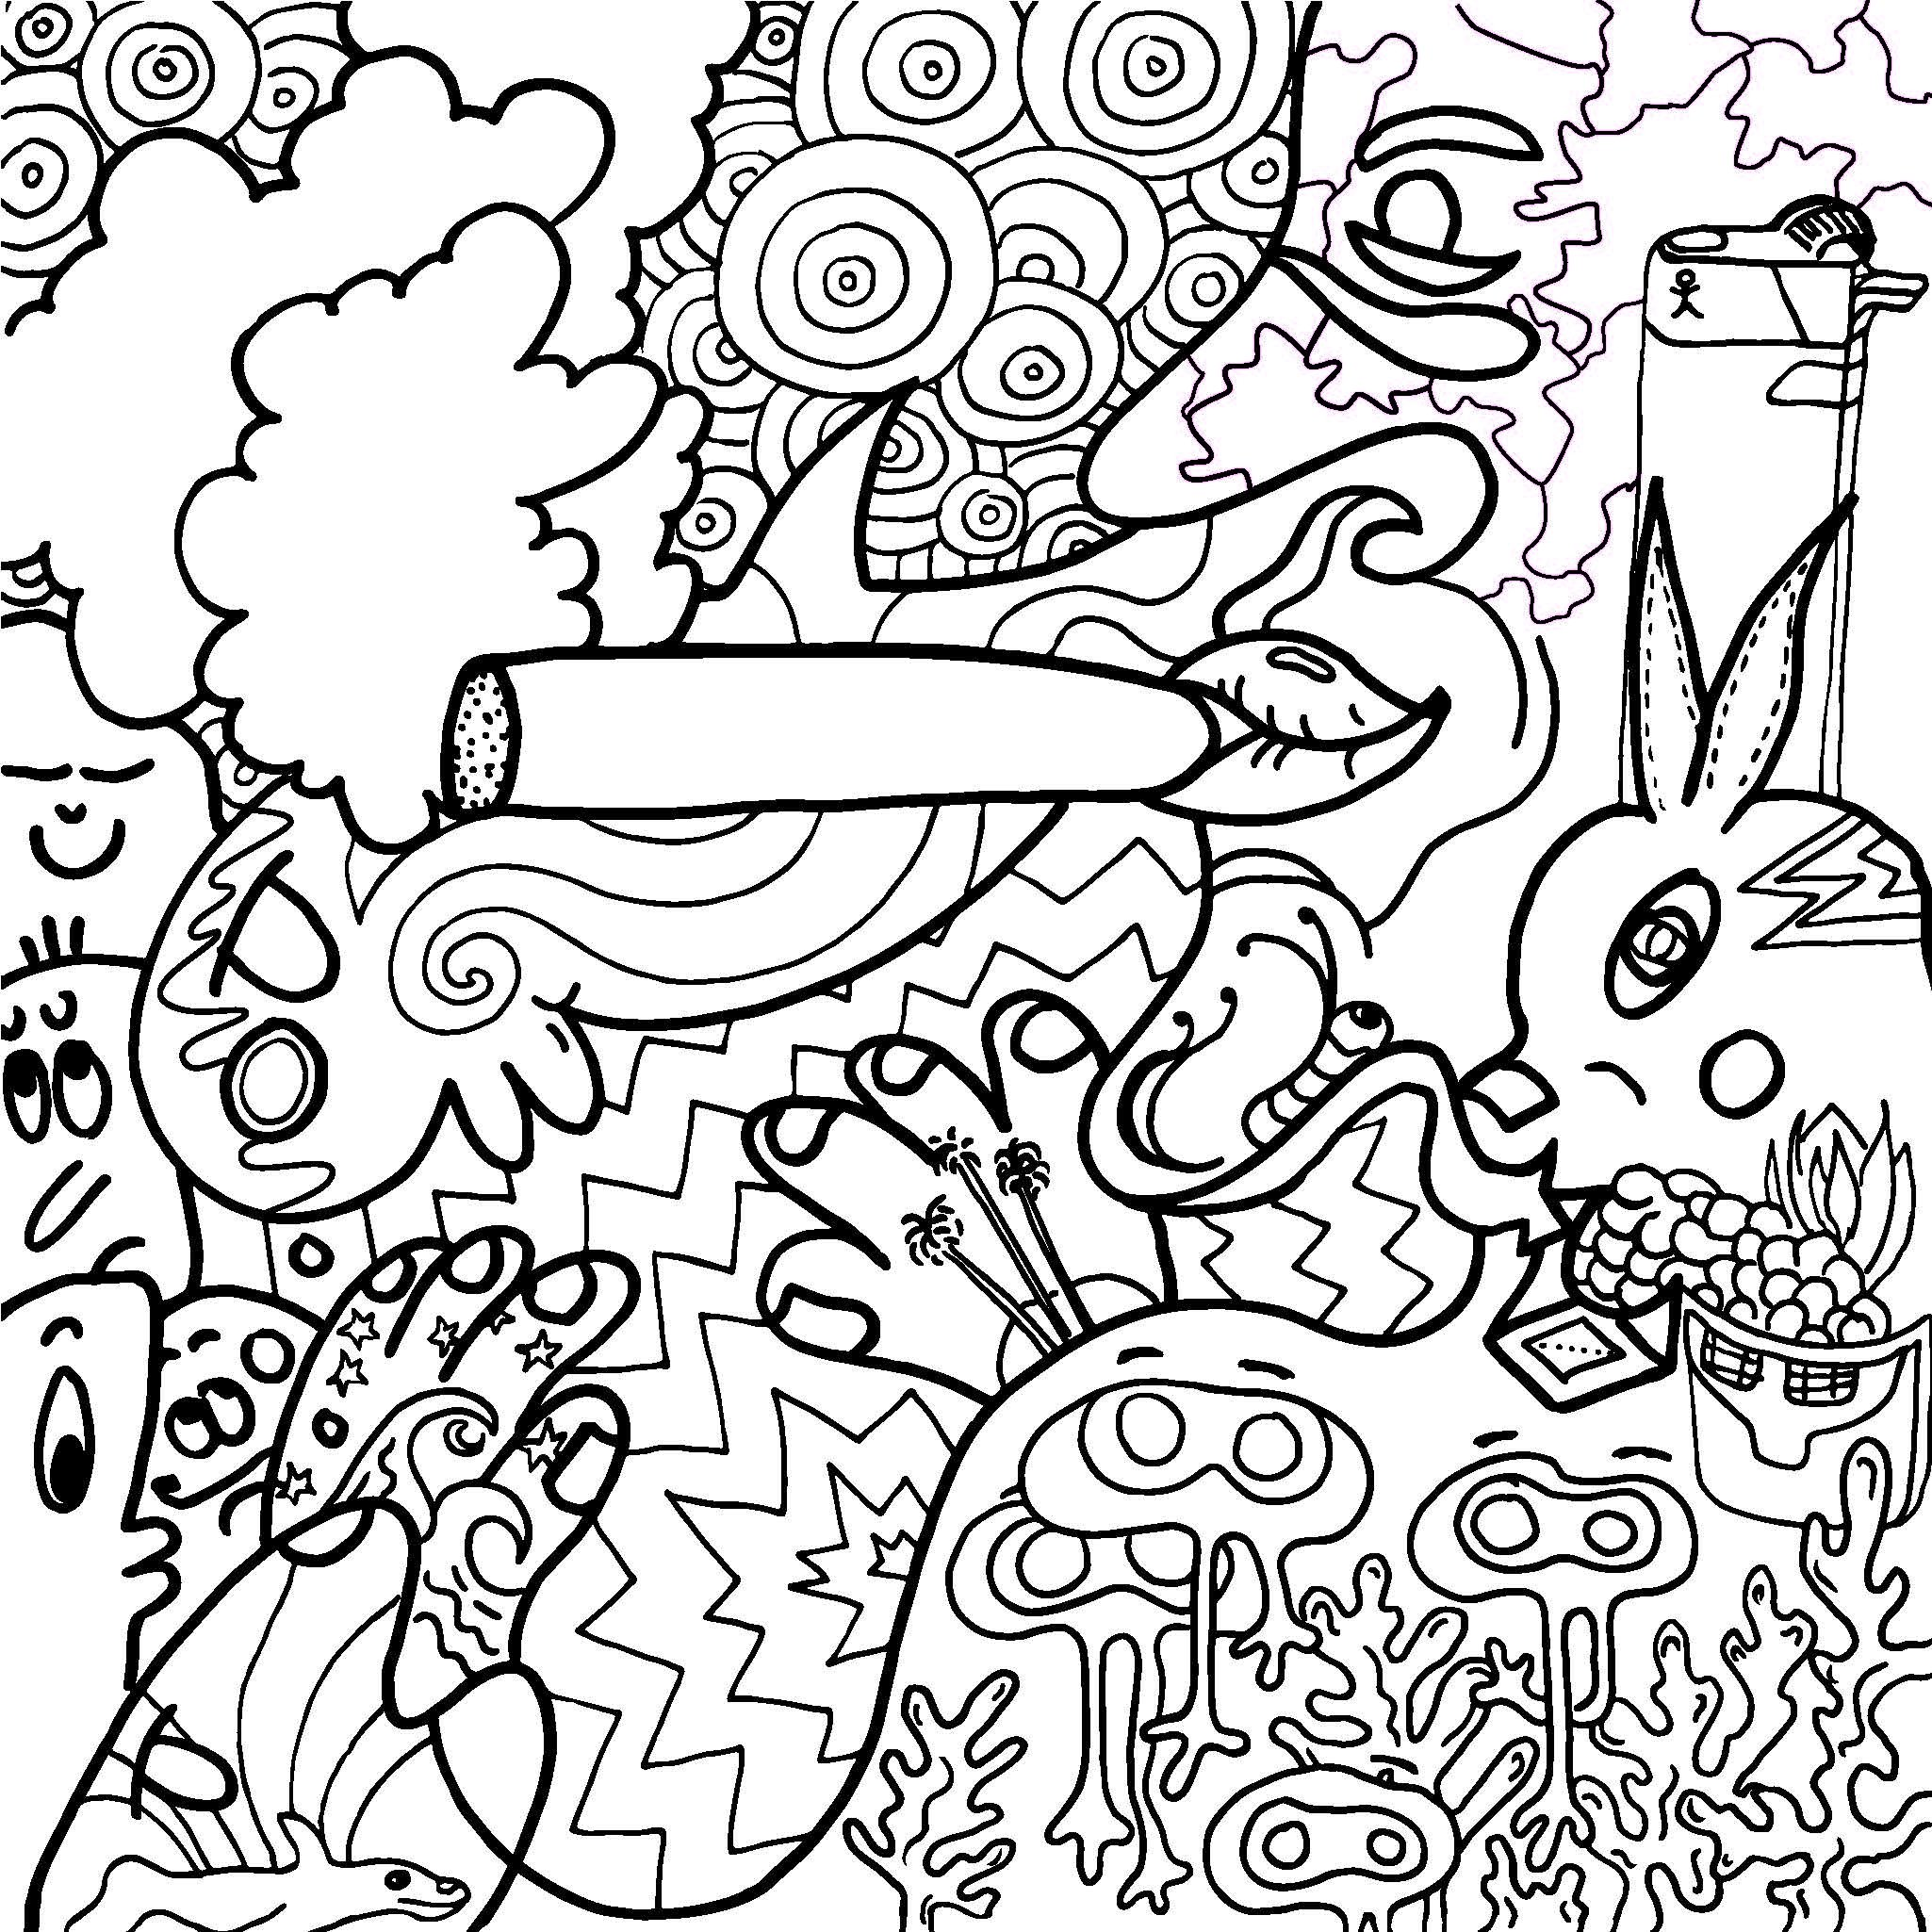 Coloring book download zip - The Stoner S Coloring Book Coloring For High Minded Adults Jared Hoffman 9780143130291 Amazon Com Books